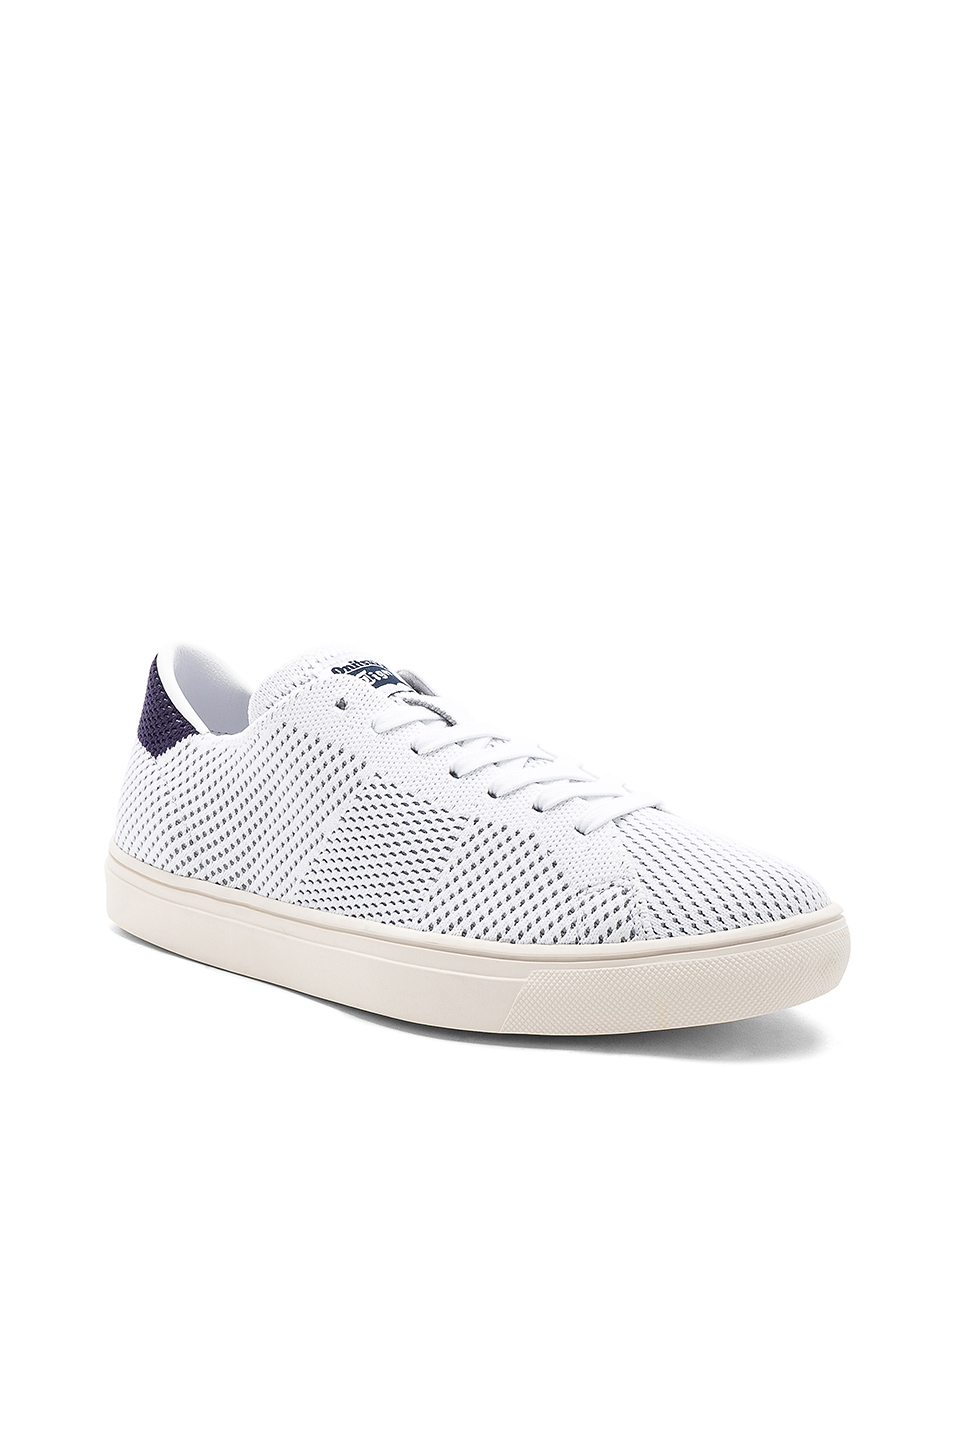 new style afb11 fe1d4 Lawnship 2.0 Knit, Onitsuka Tiger